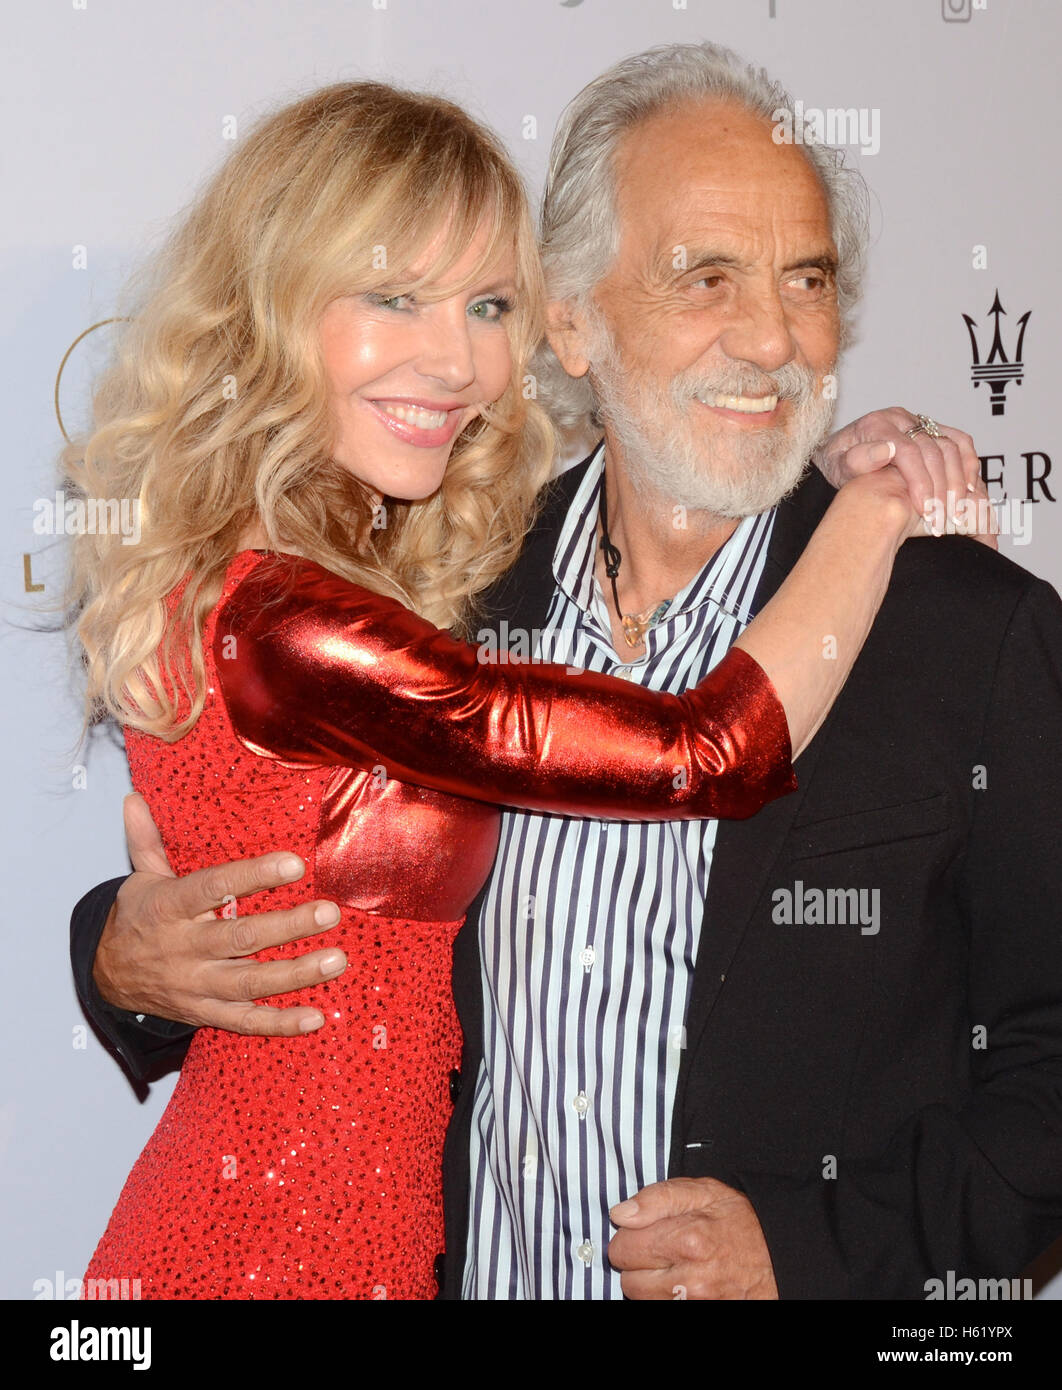 Discussion on this topic: Shirley Strickland 7 Olympic medals, shelby-chong/